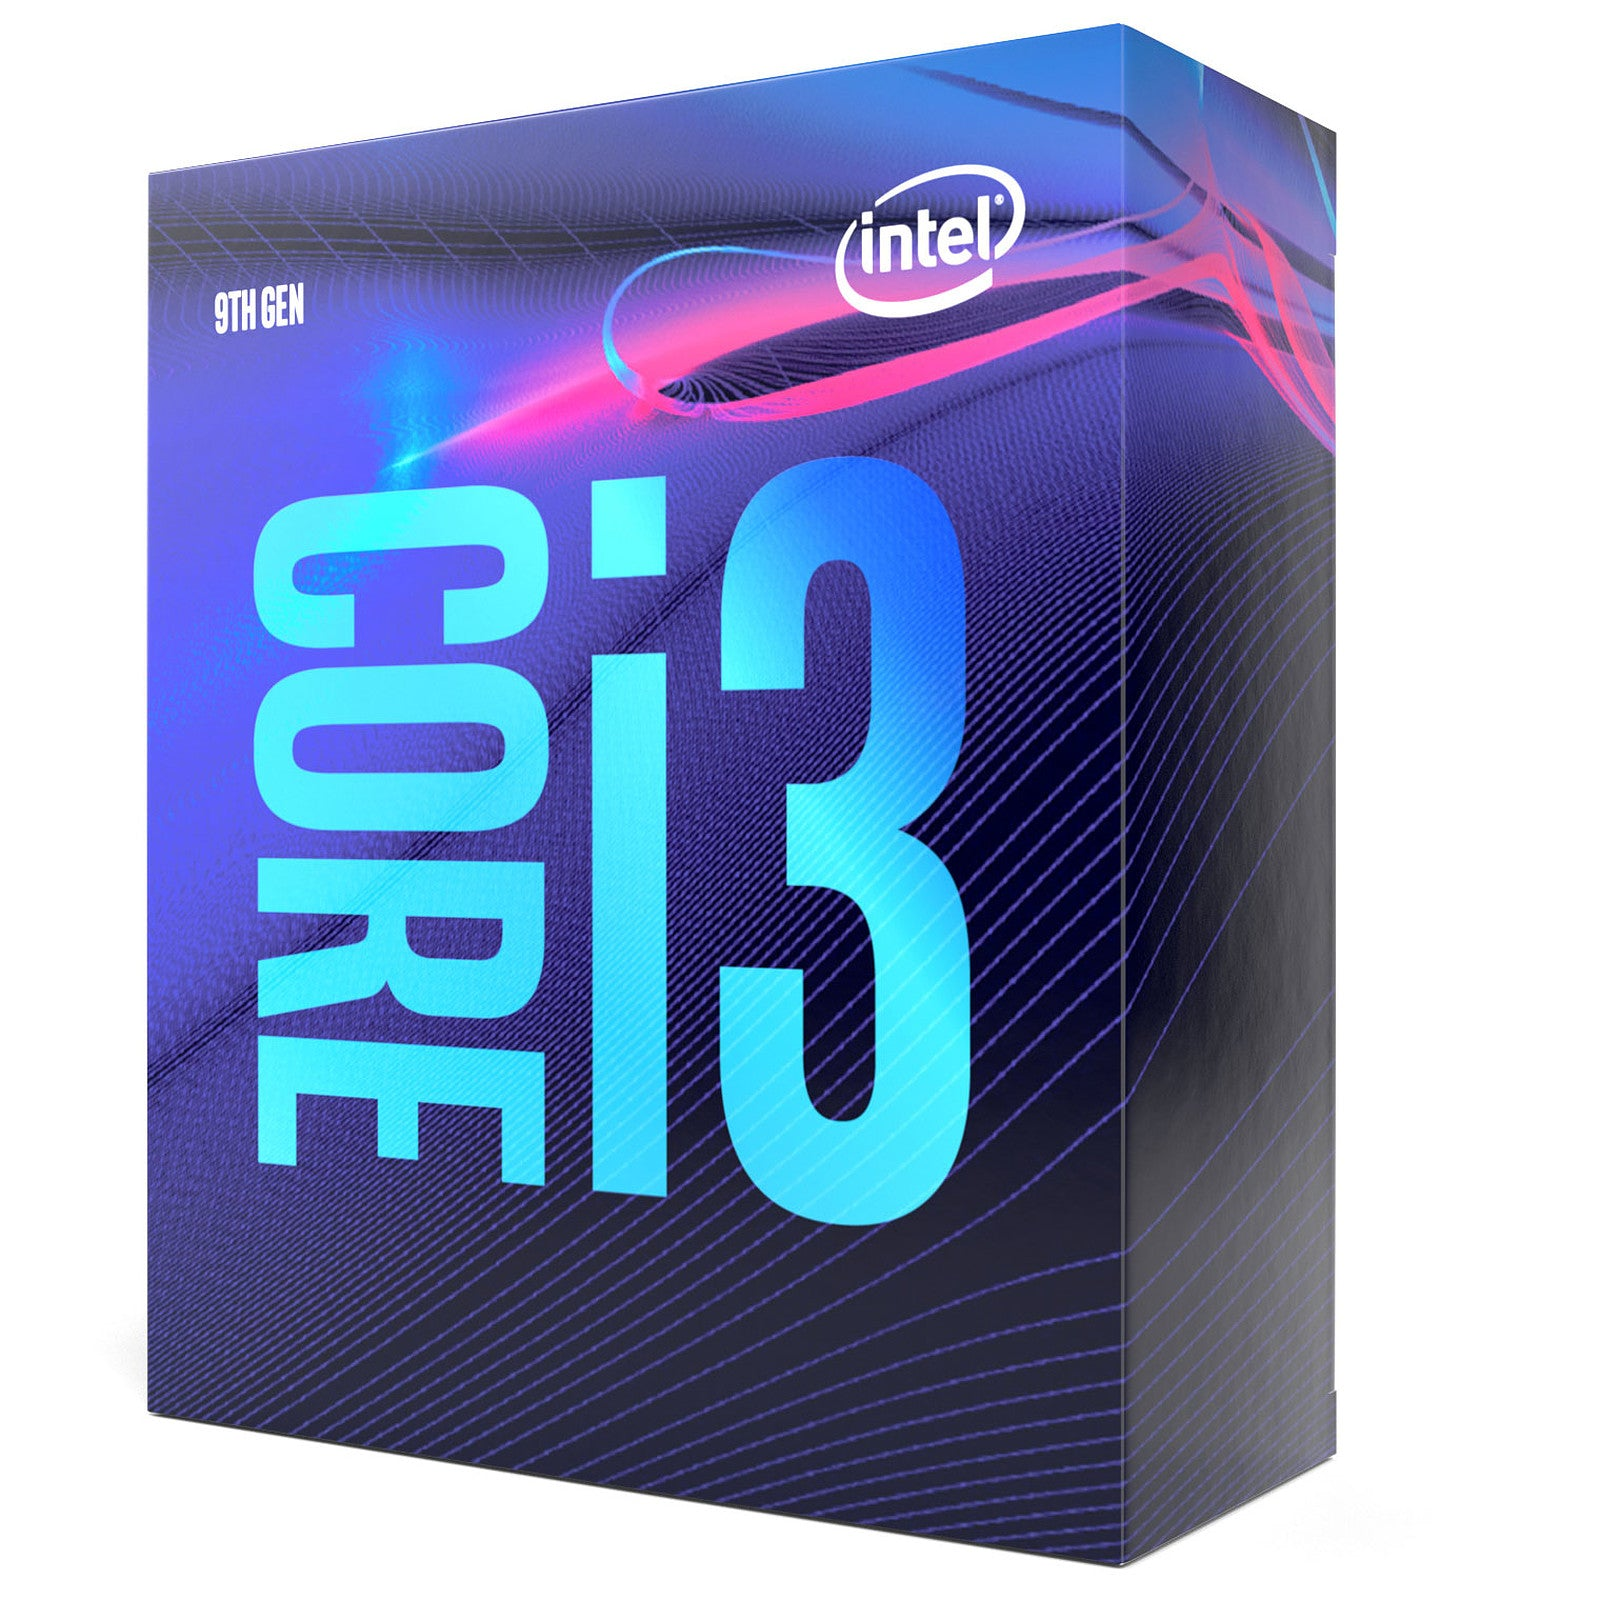 Intel Core i3-9100 (3.6 GHz / 4.2 GHz)